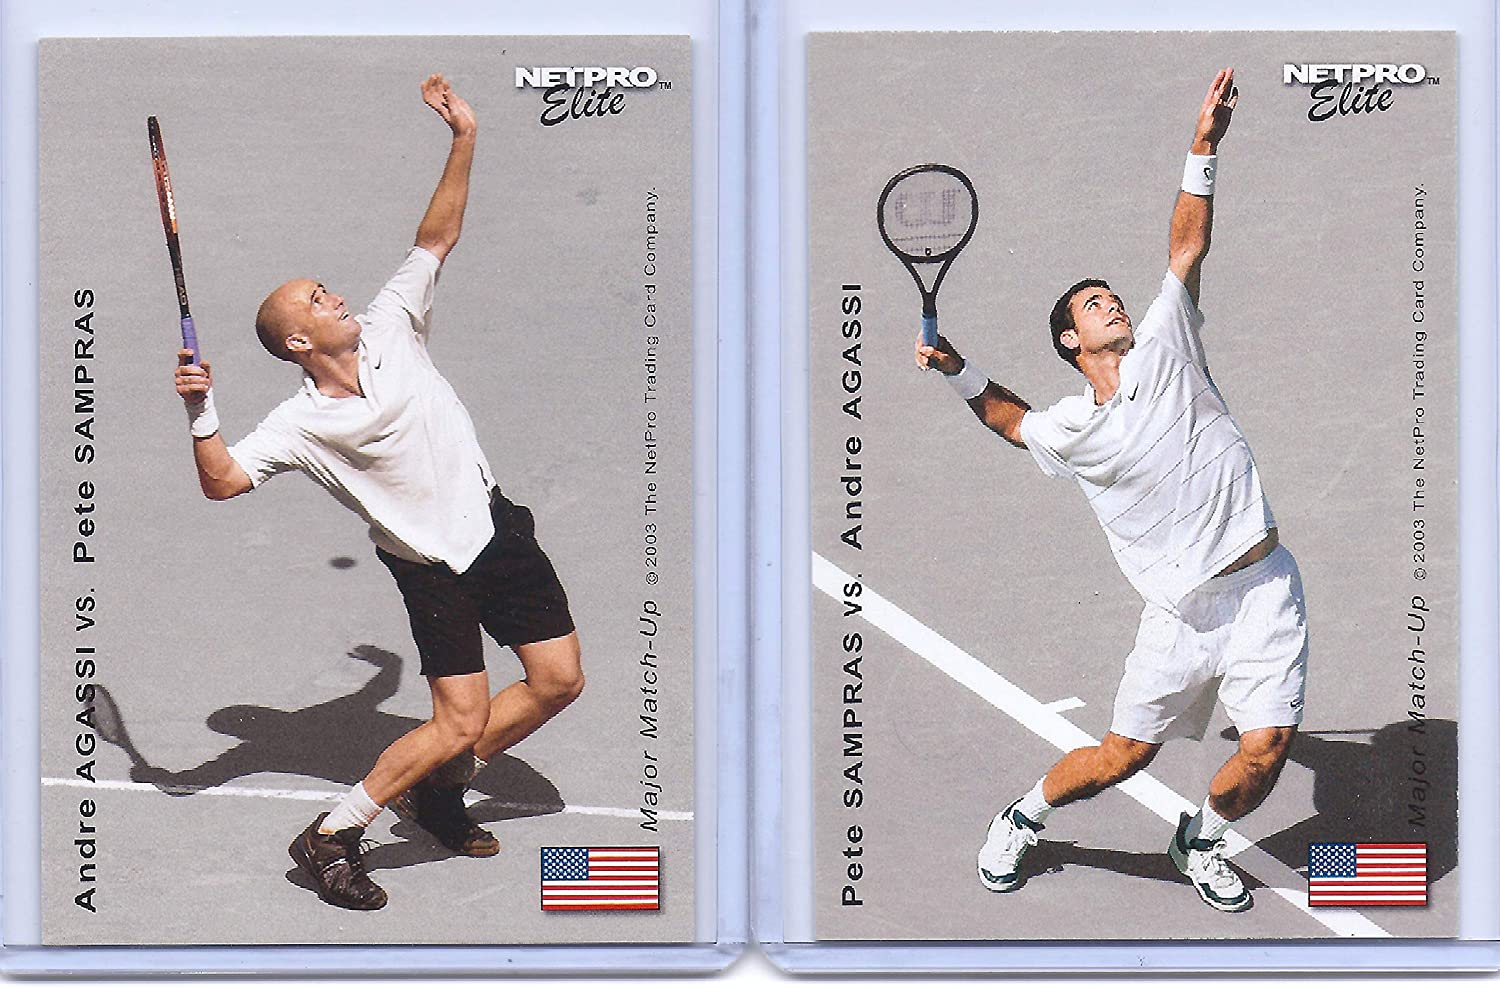 Andre Agassi & PETE SAMPRAS U.S.A. 2003 NETPRO Elite Great Matchup Dual FLIP Rookie Card! Tennis Legends!